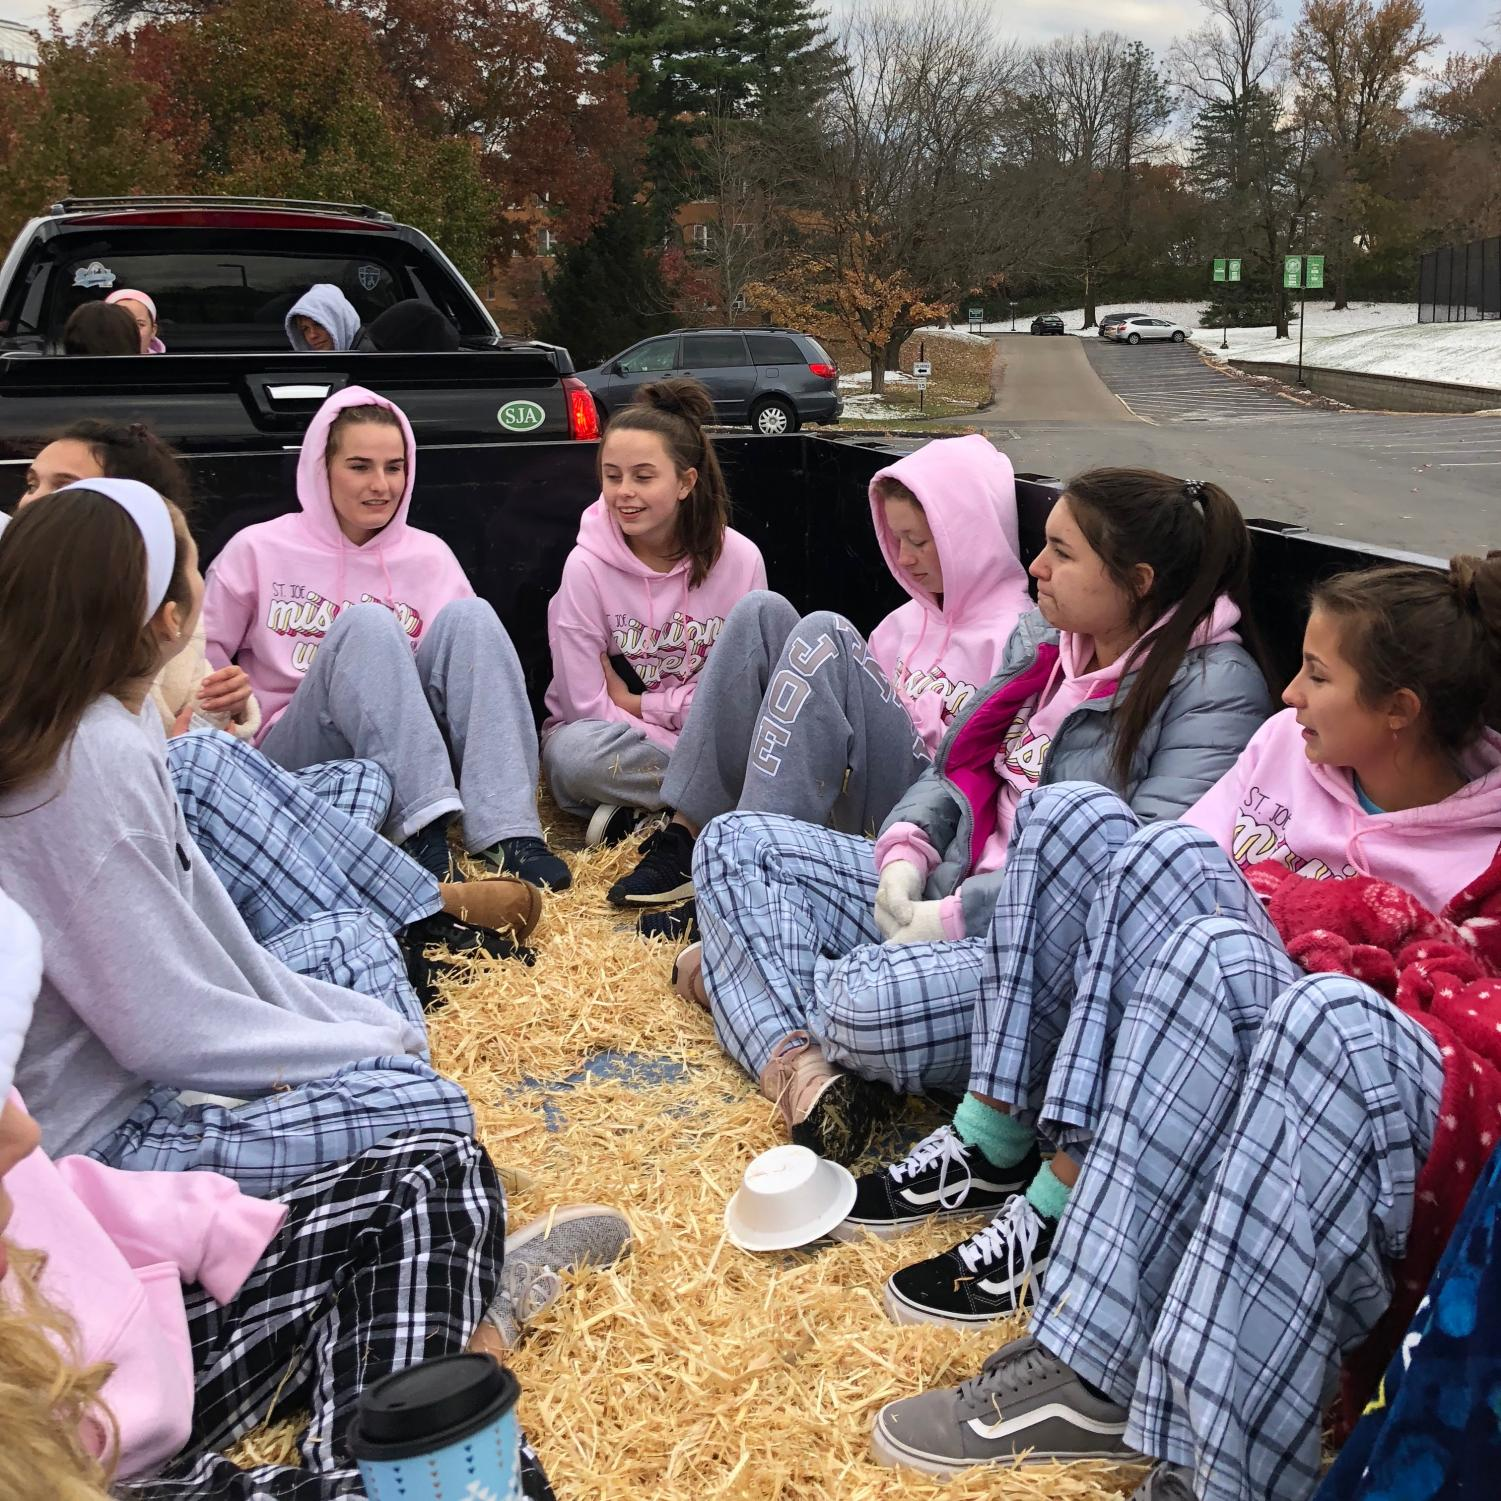 Sophomore enjoy a hayride in 30 degree temperatures at their class fundraiser on Wednesday.